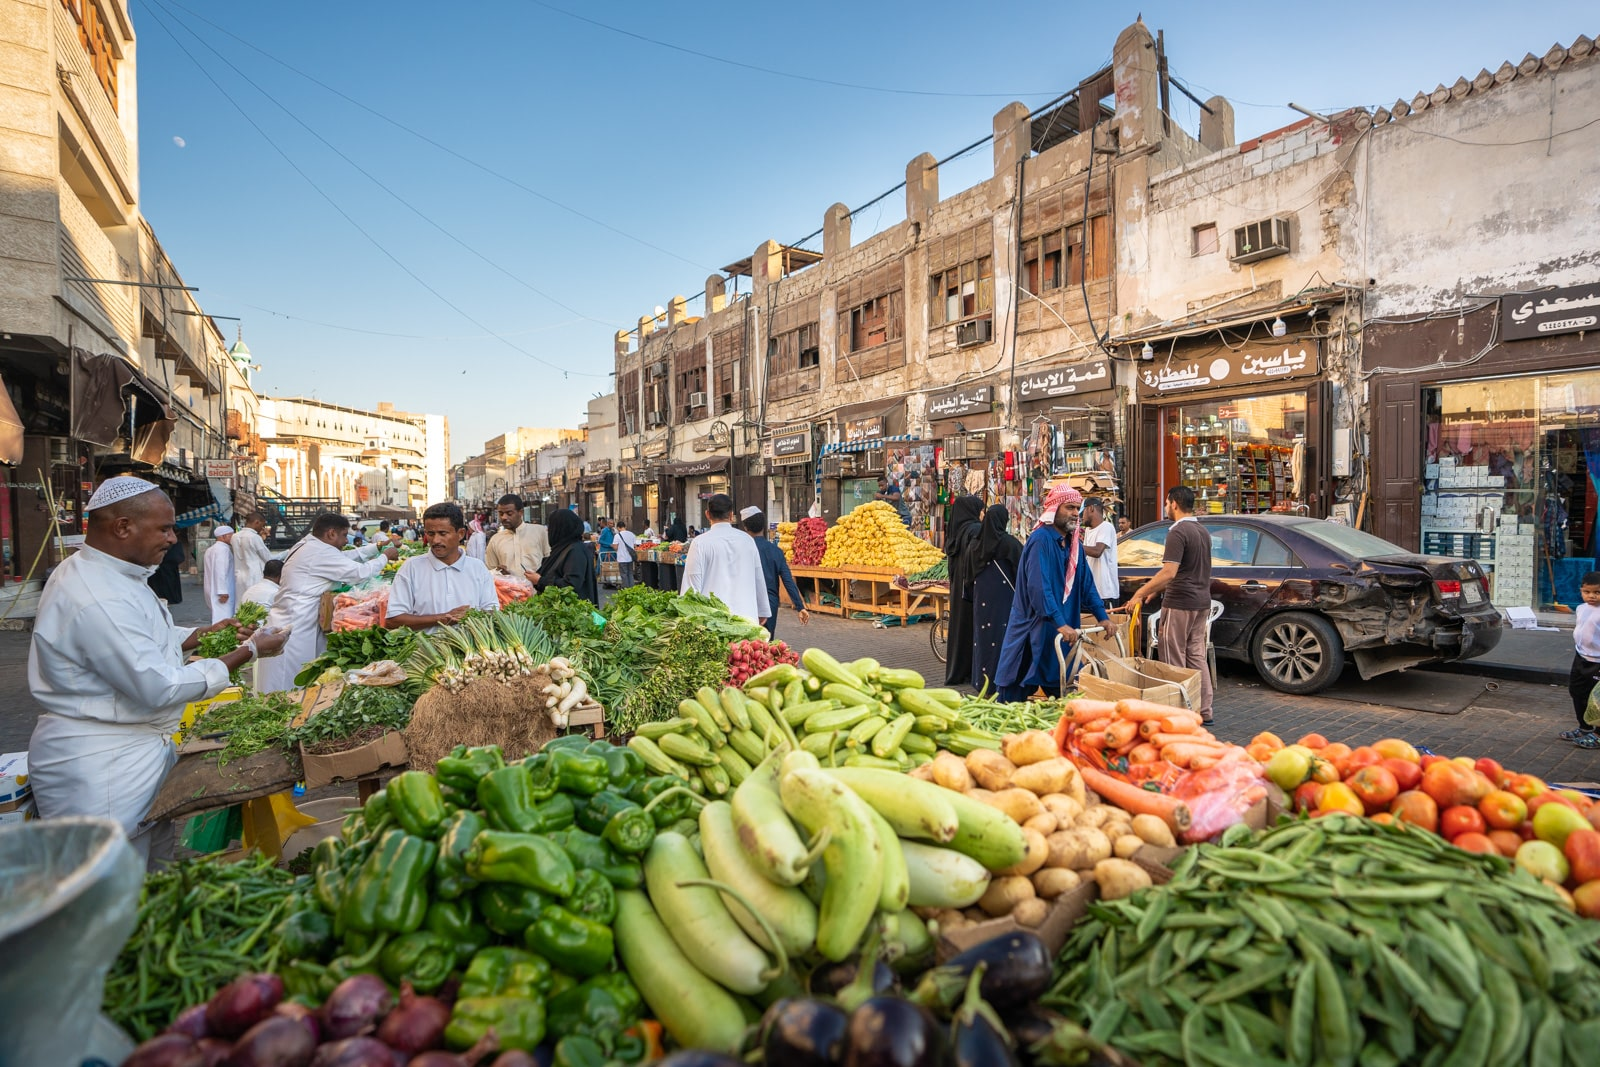 Vegetable vendors at a street market in Old Jeddah, Saudi Arabia